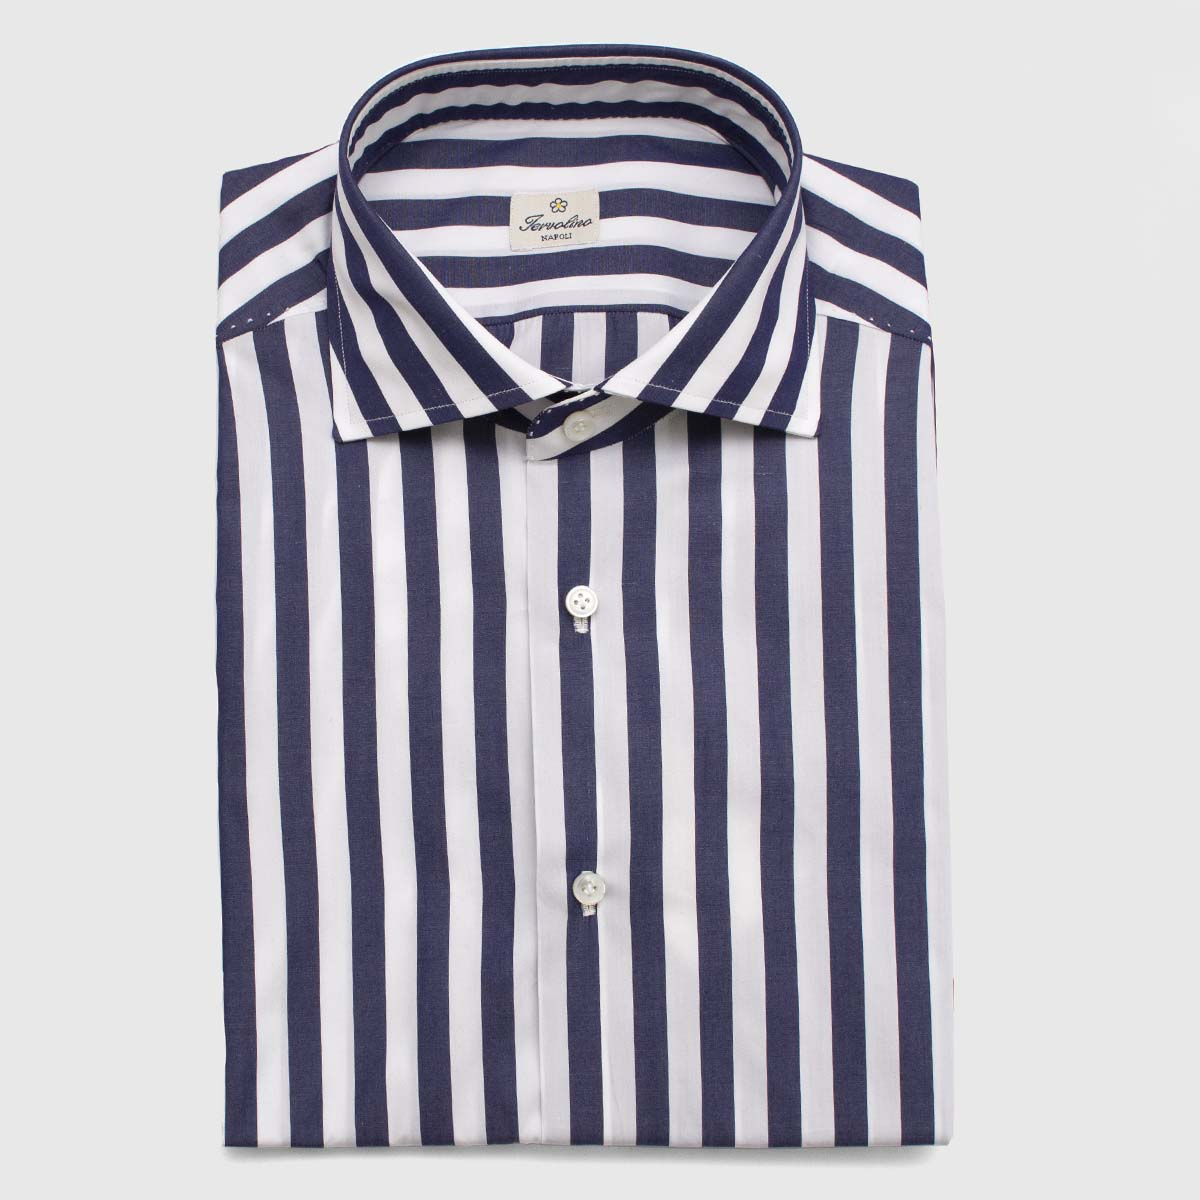 100% Dark blue and white Cotton shirt made in 12 hand-made steps